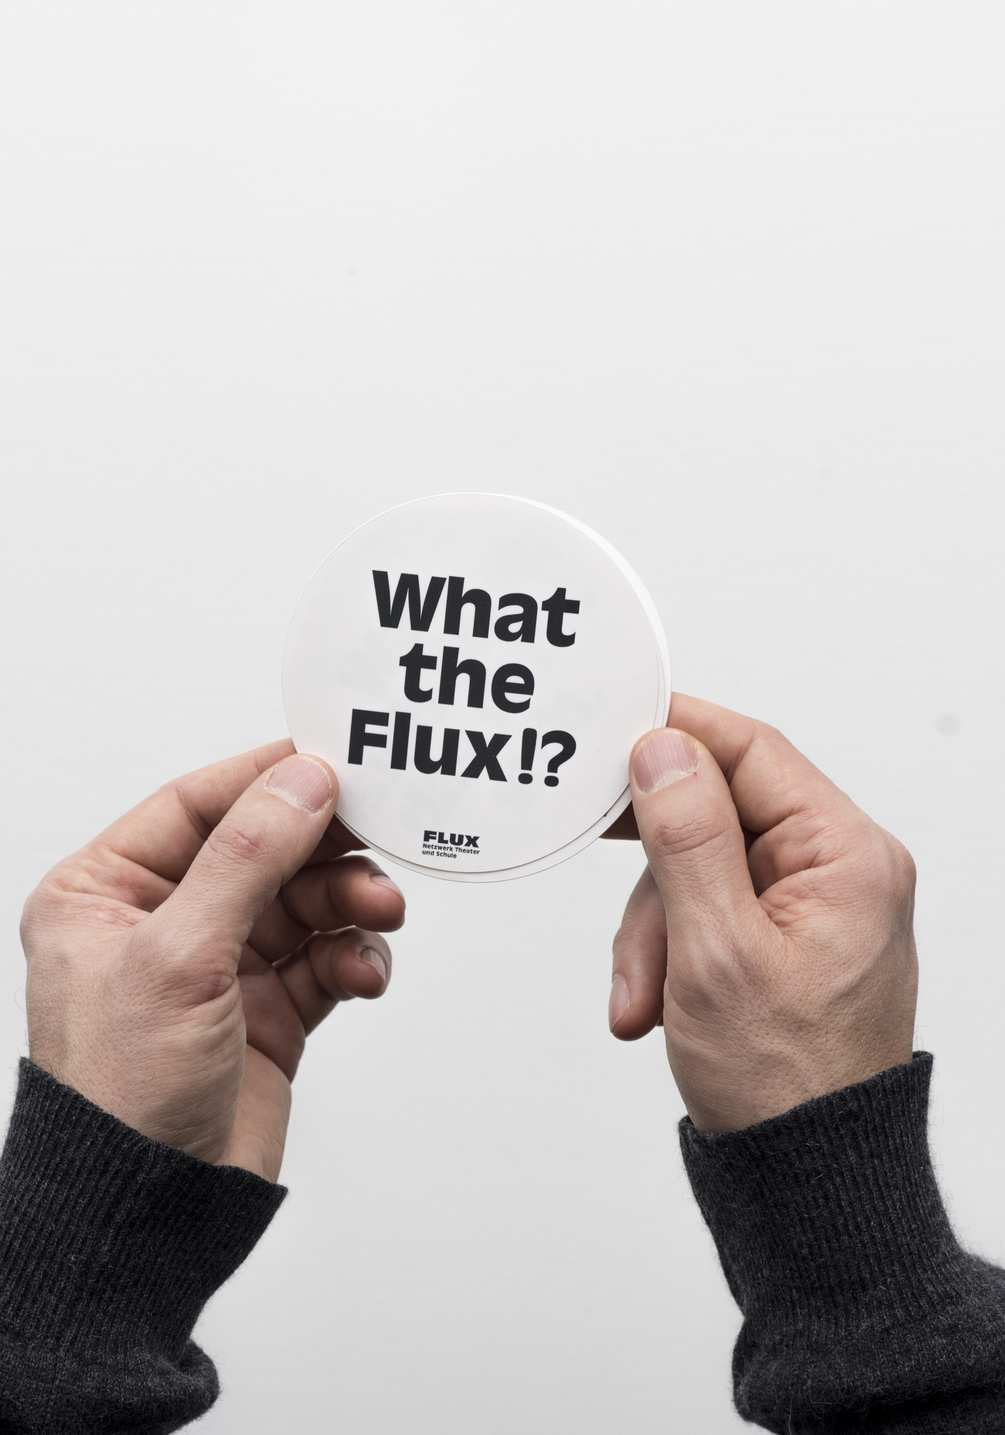 flux-sticker-8-1005x1435px